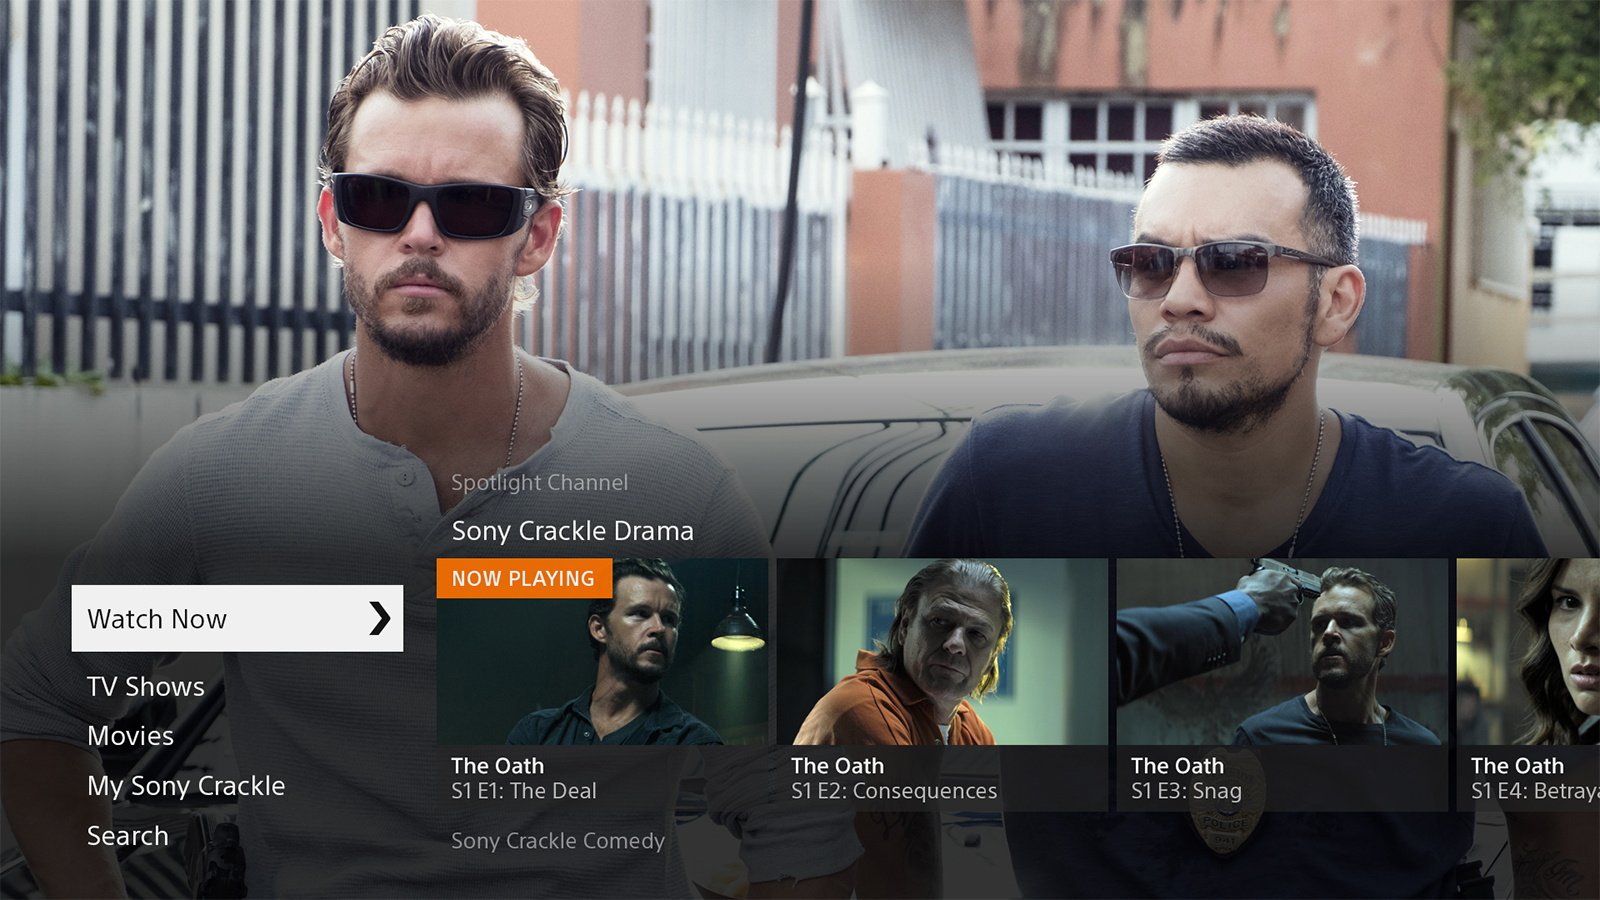 How to Watch American Crackle Outside the US - TechNadu